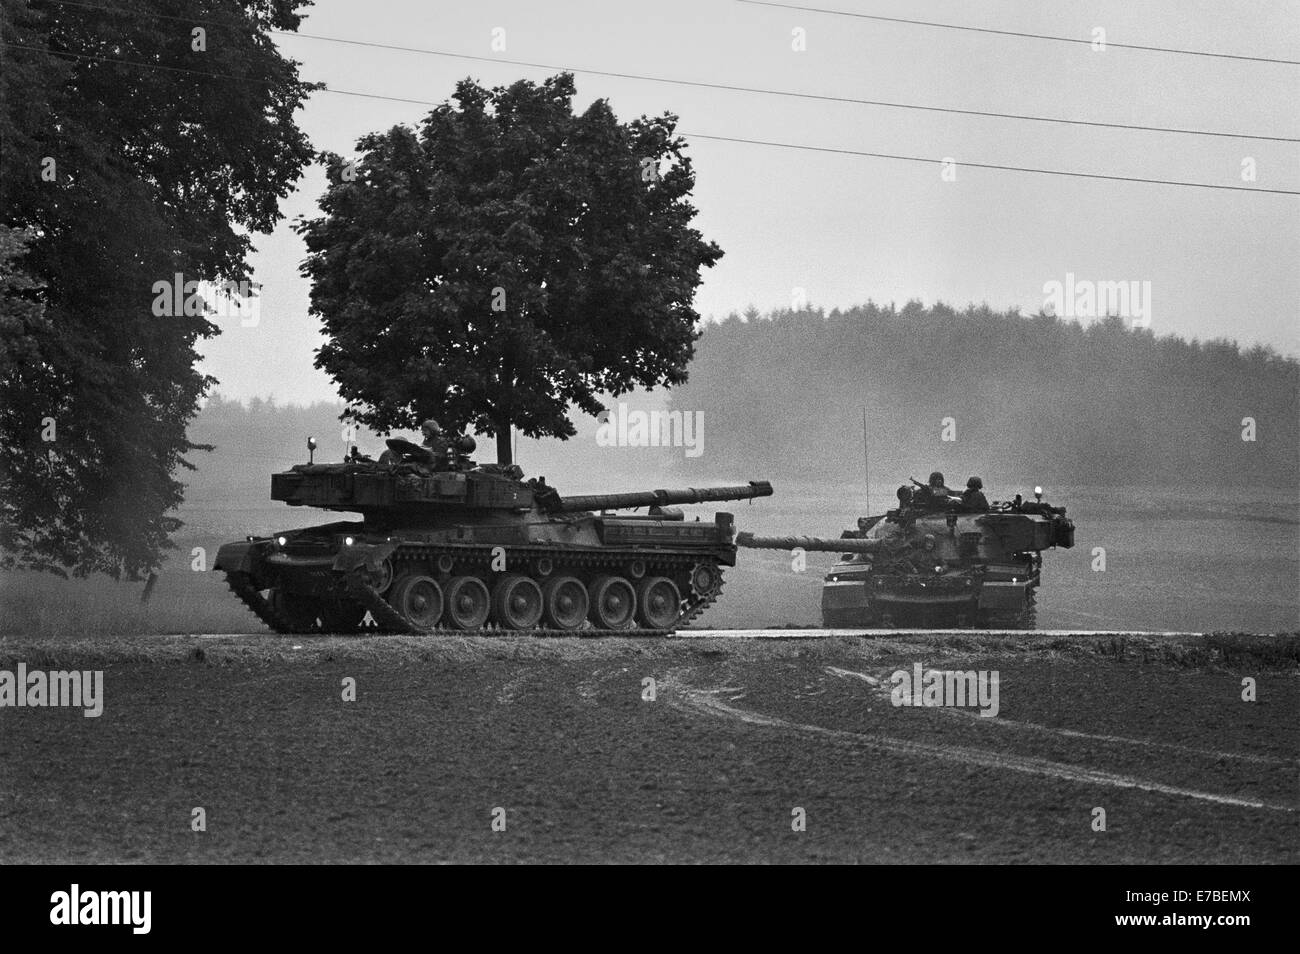 NATO exercises in Germany, British Army Chieftain tanks (September 1986) - Stock Image